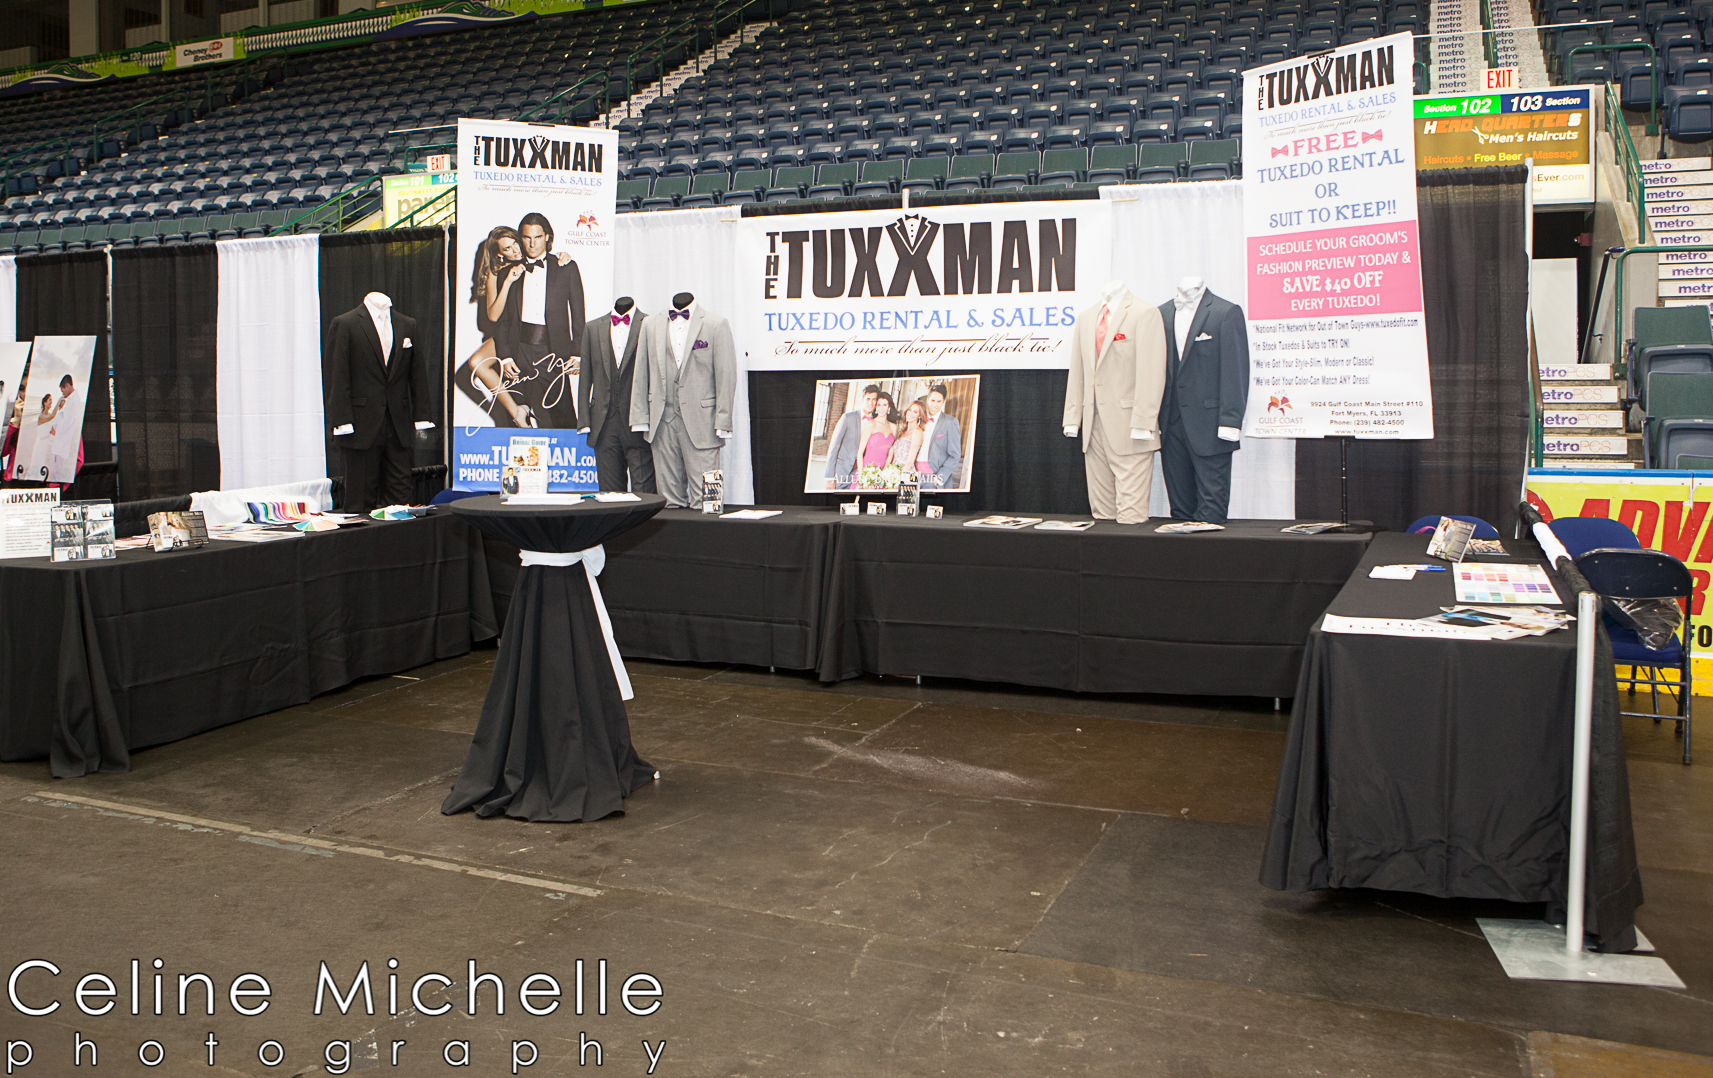 The Tuxxman booth at the Bridal Blast